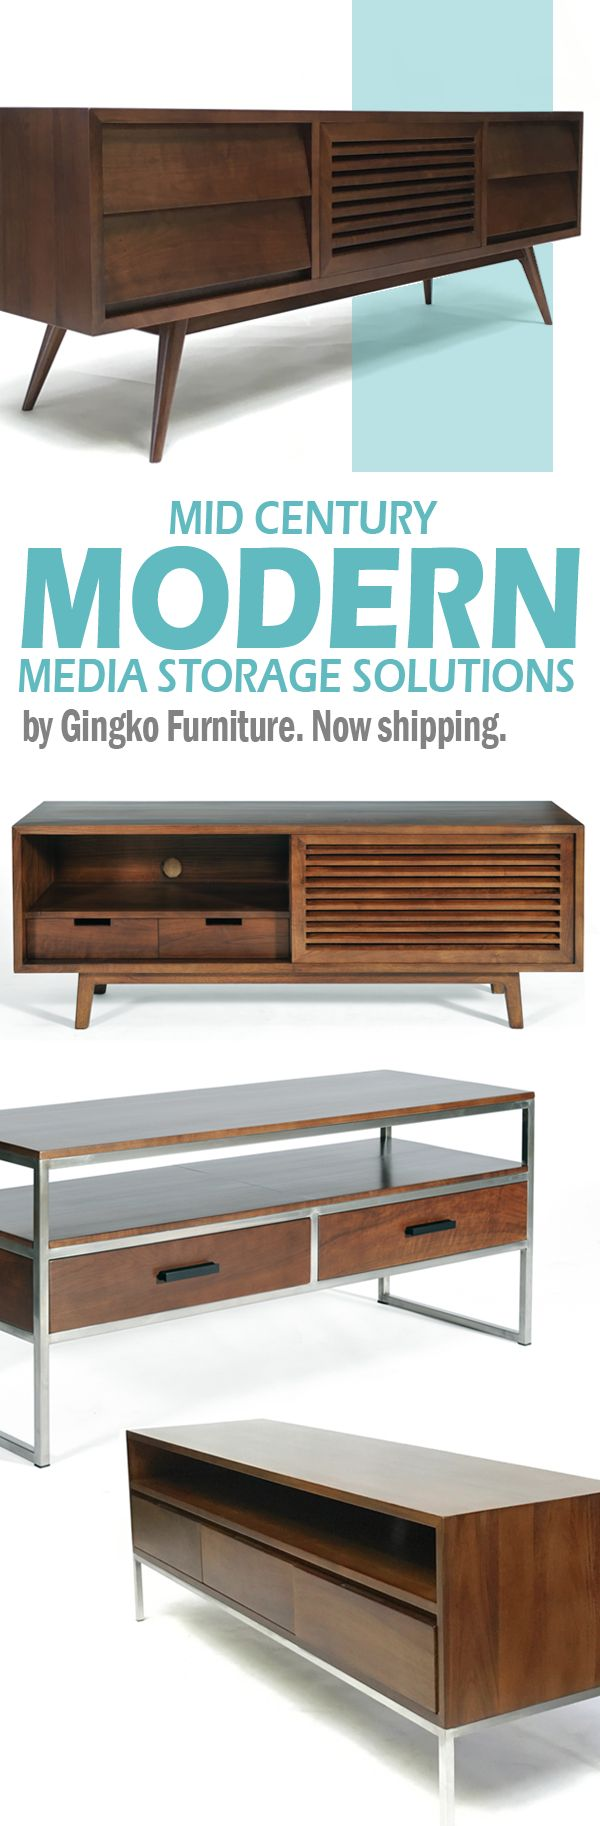 Full line of Mid Century Modern TV cabinets all hand-crafted in solid Walnut. Visit Gingko's Bay Area showrooms in Mountain View or San Francisco to see our entire line of mid-century modern furniture.